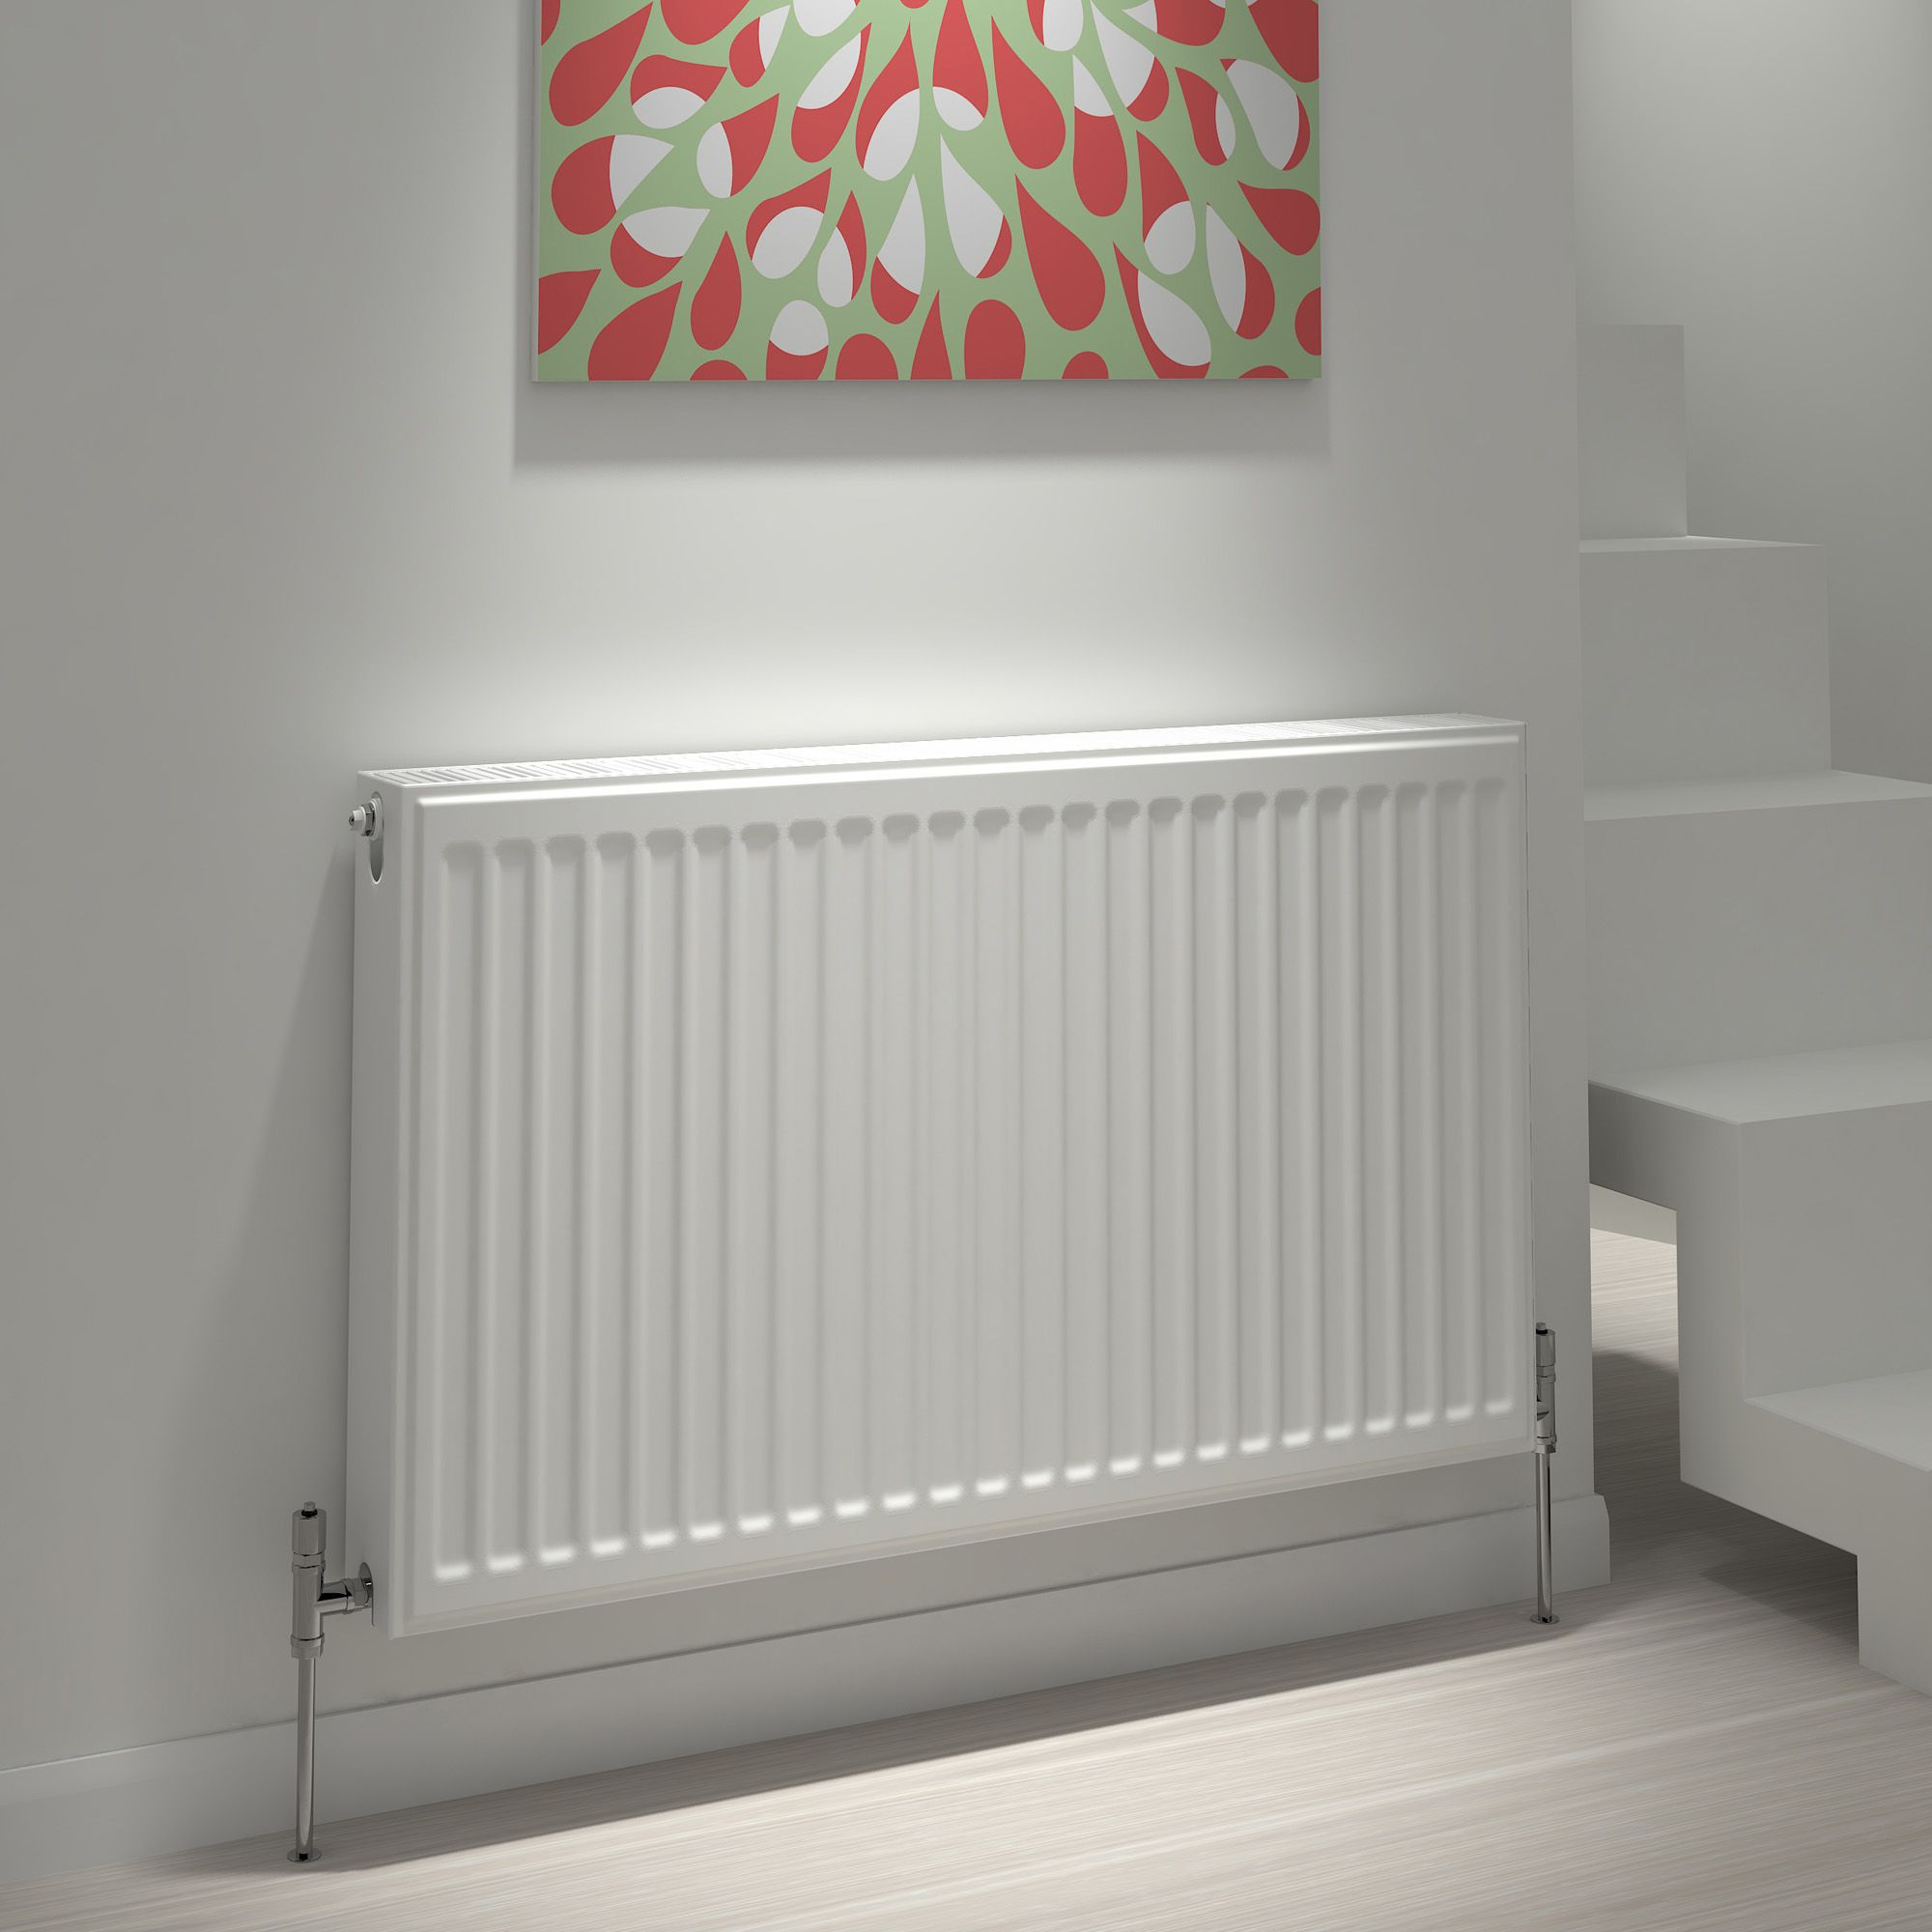 Kudox Type 22 Double Panel Radiator, (H)500mm (W)800mm